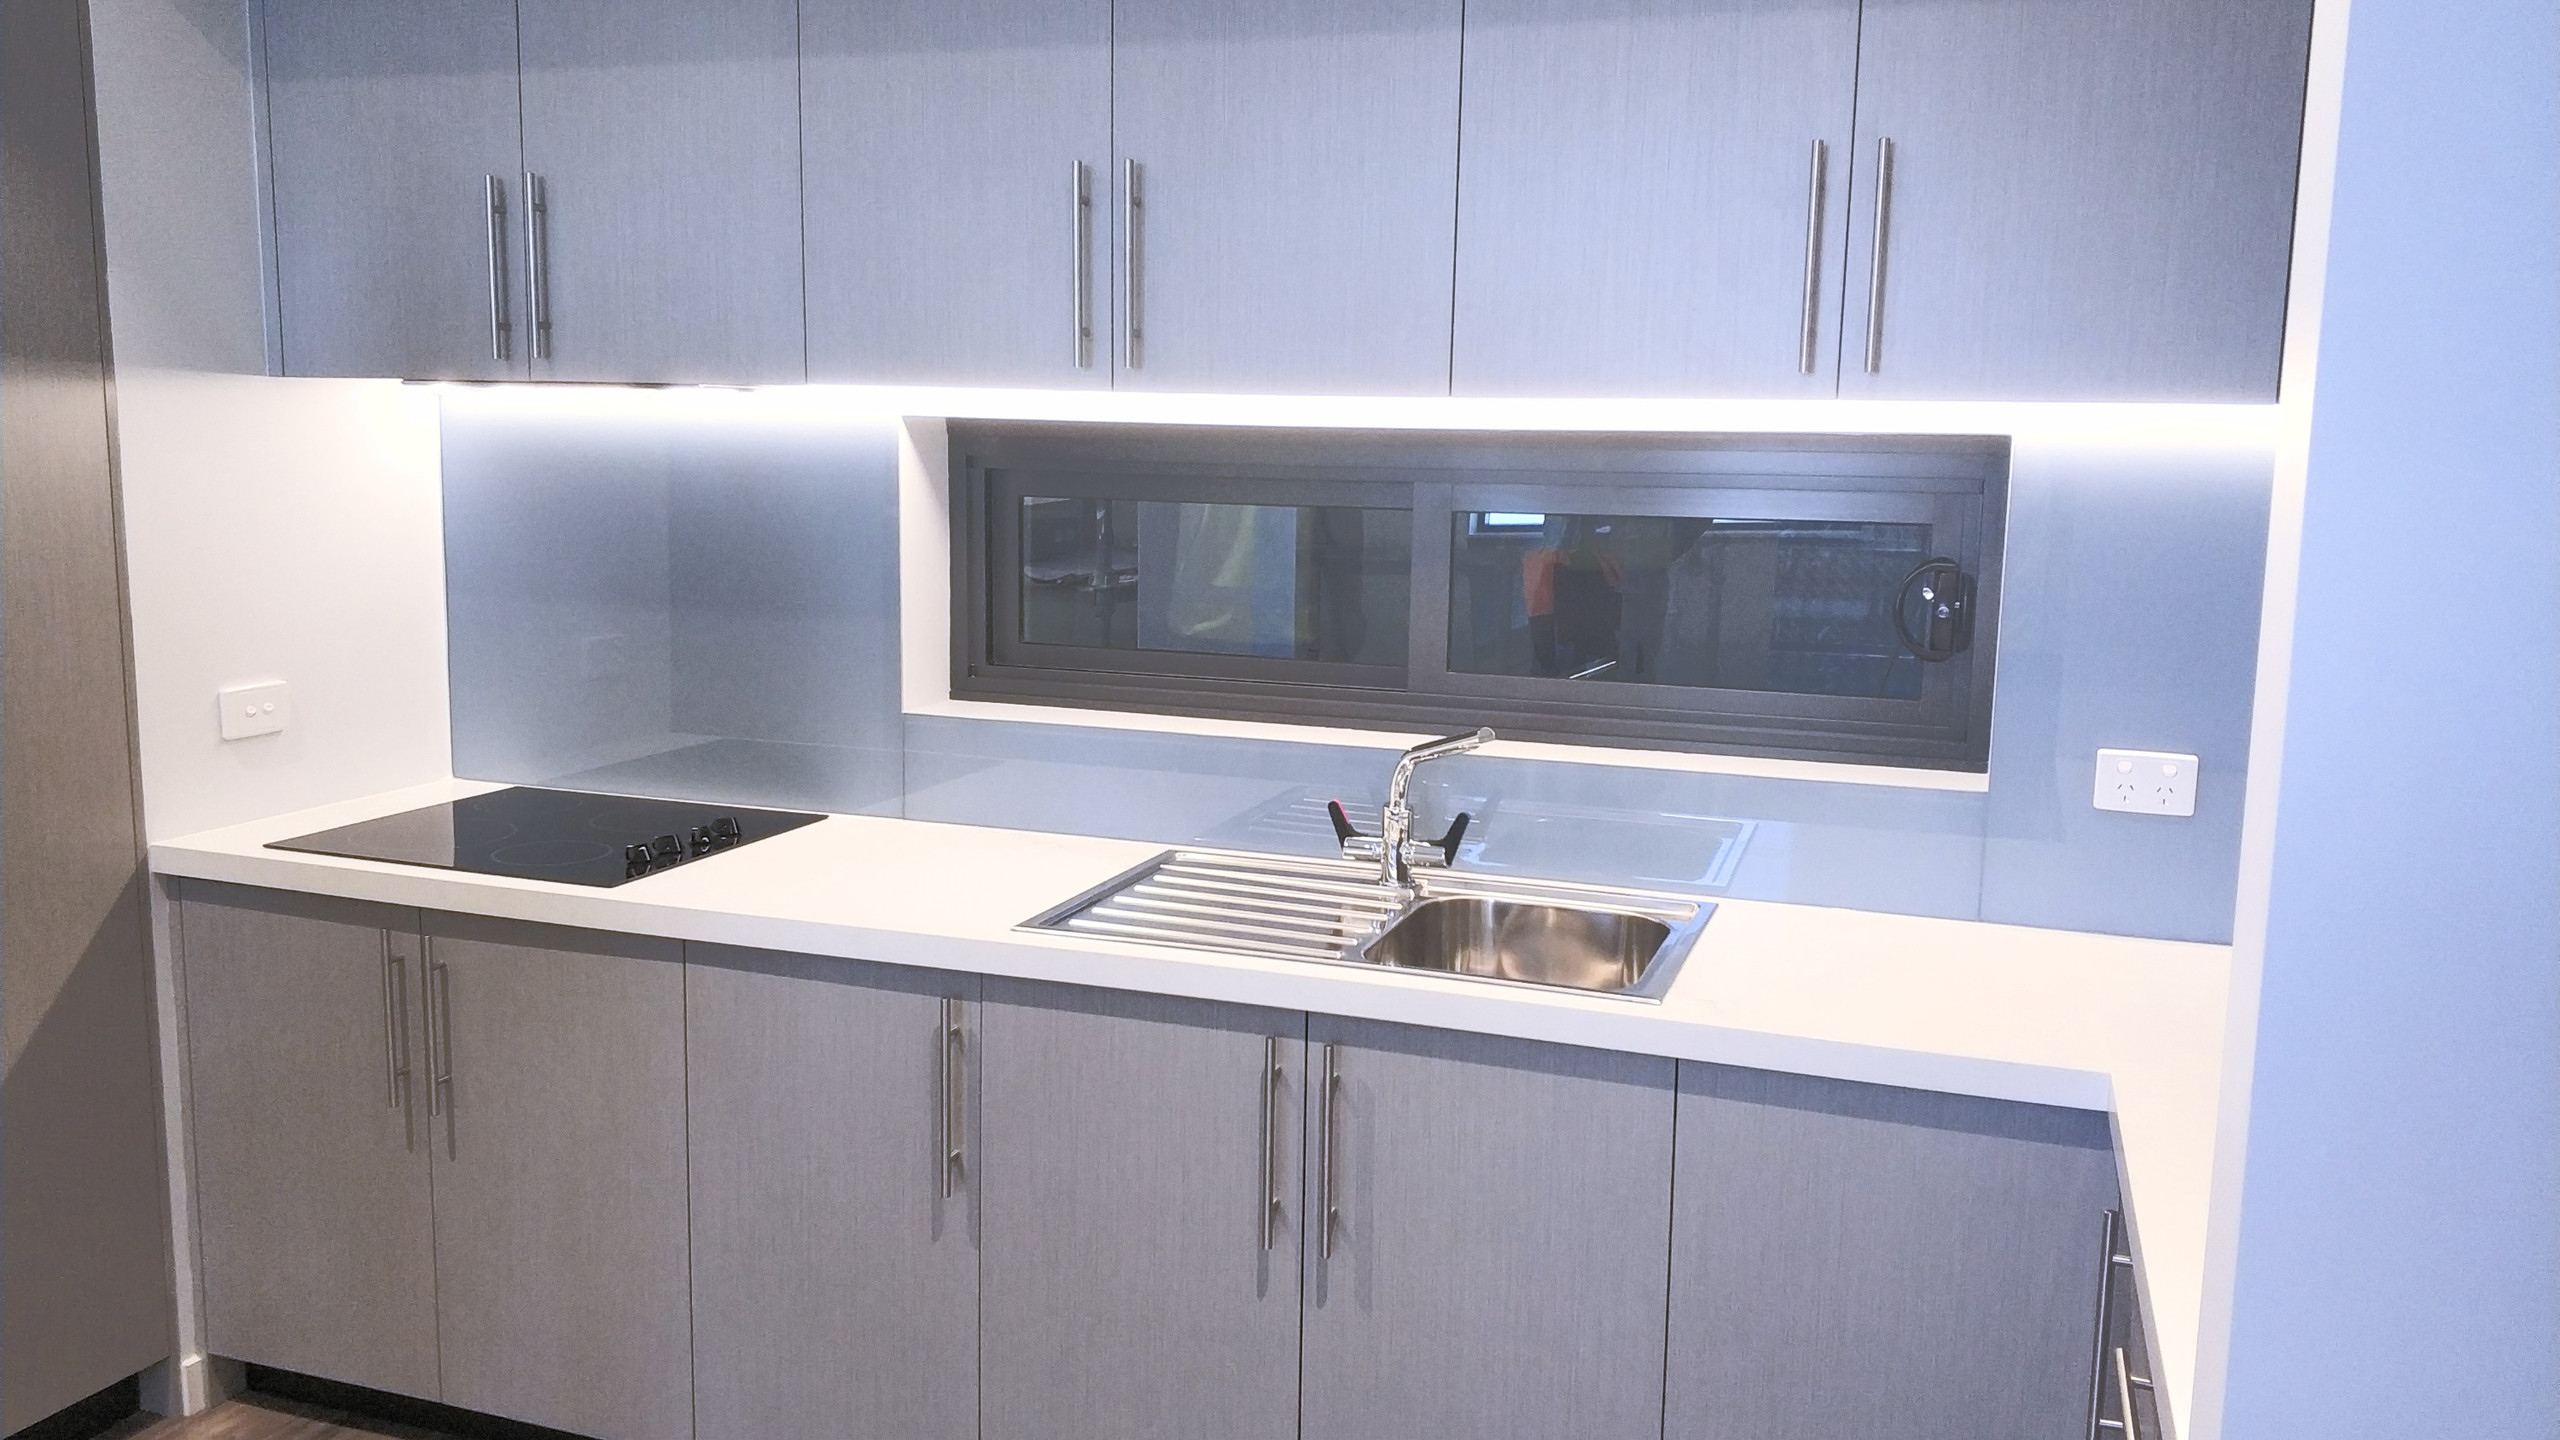 Kitchen Joinery at Toongabbie Project